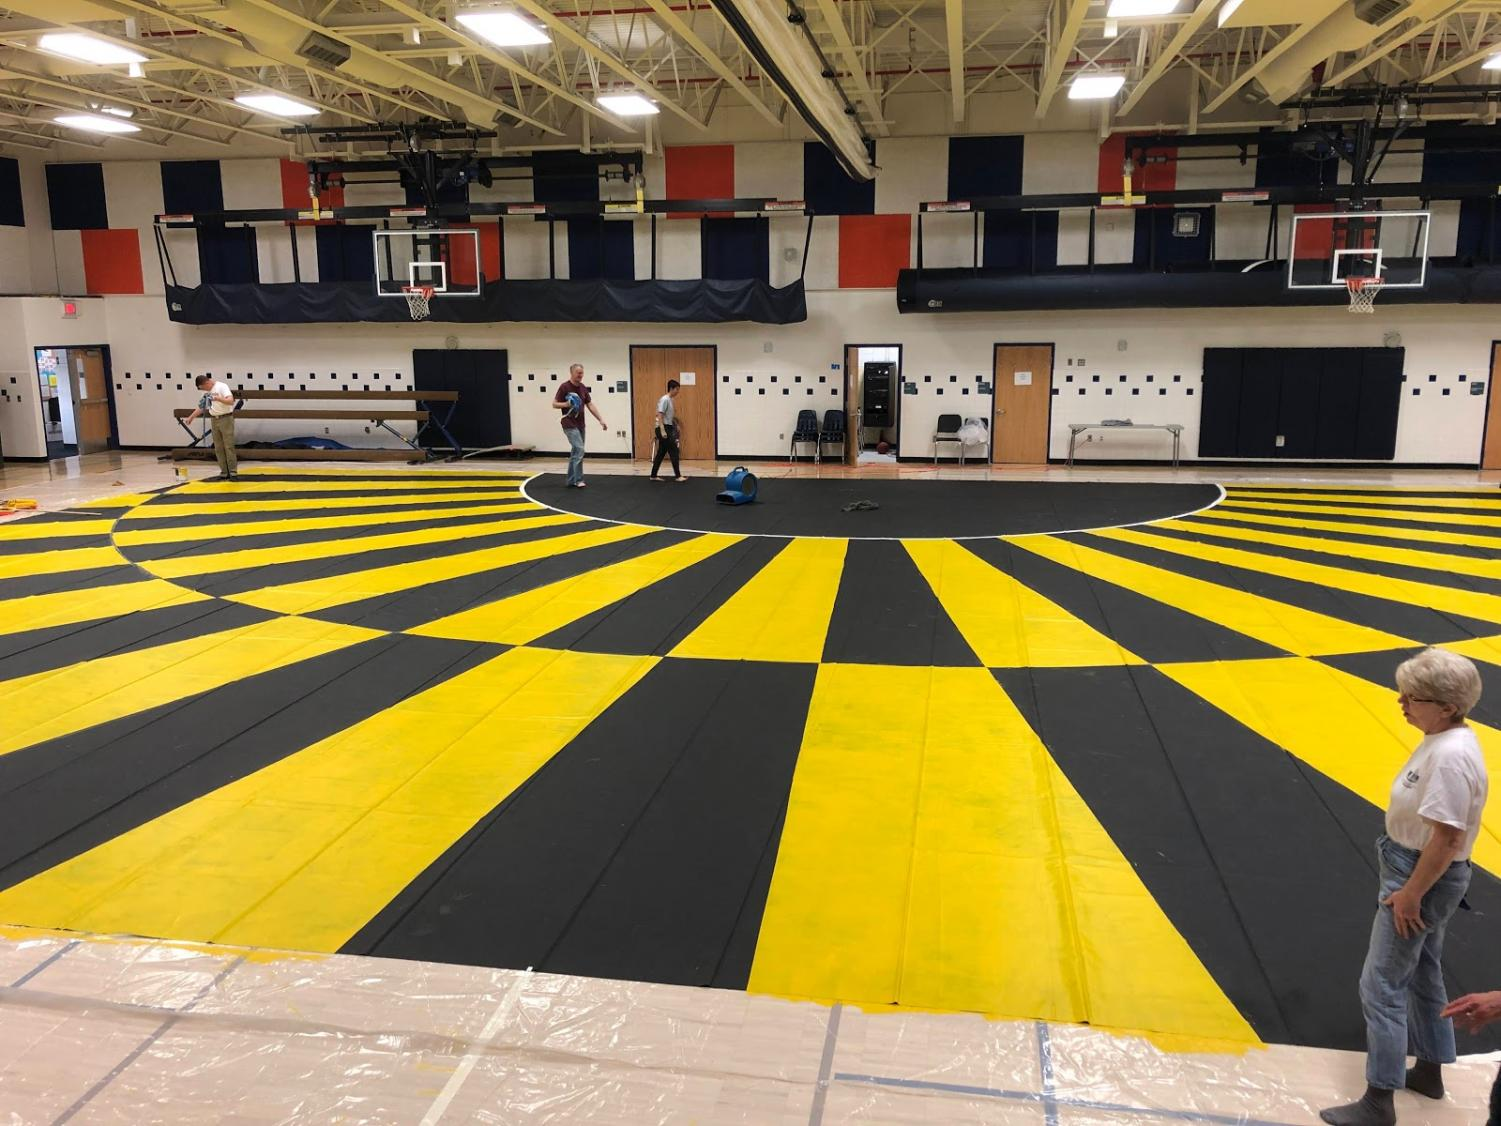 The winterguard floor has a black and yellow pattern. The design is meant to be reminiscent of art deco because the theme of the show is jazz/1920s.